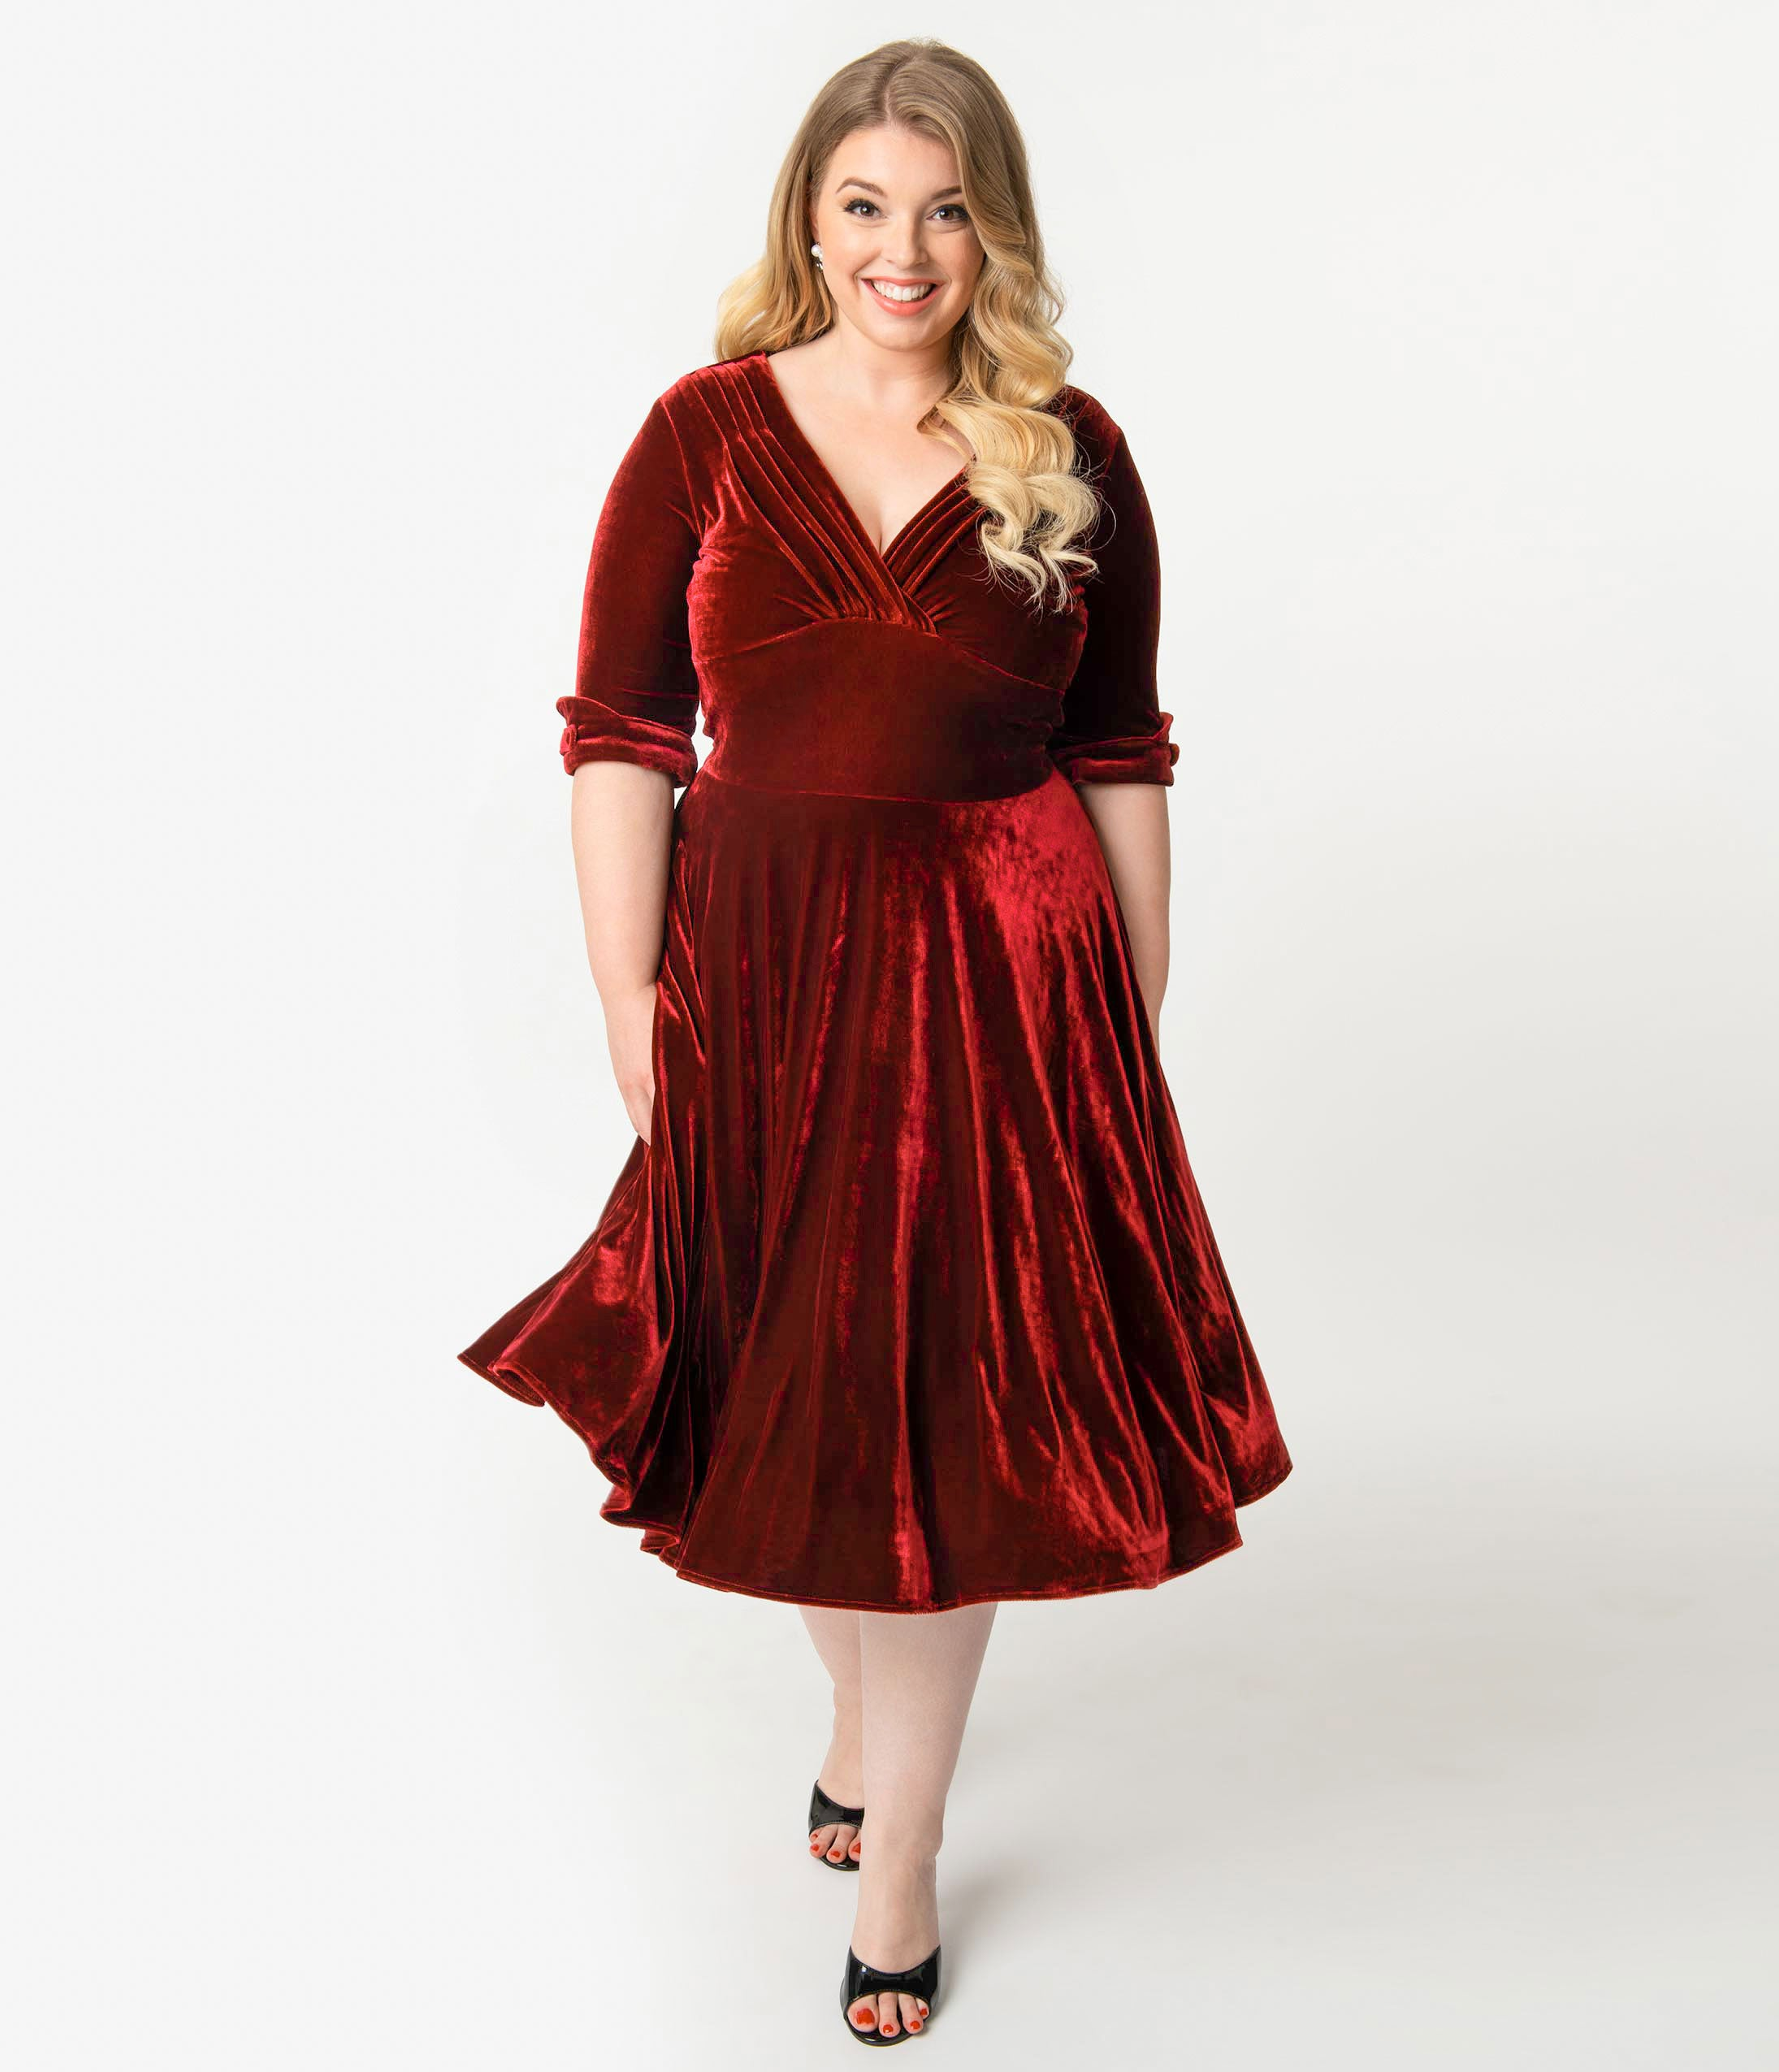 1950s Plus Size Dresses, Swing Dresses Unique Vintage Plus Size 1950S Burgundy Red Velvet Delores Swing Dress With Sleeves $98.00 AT vintagedancer.com